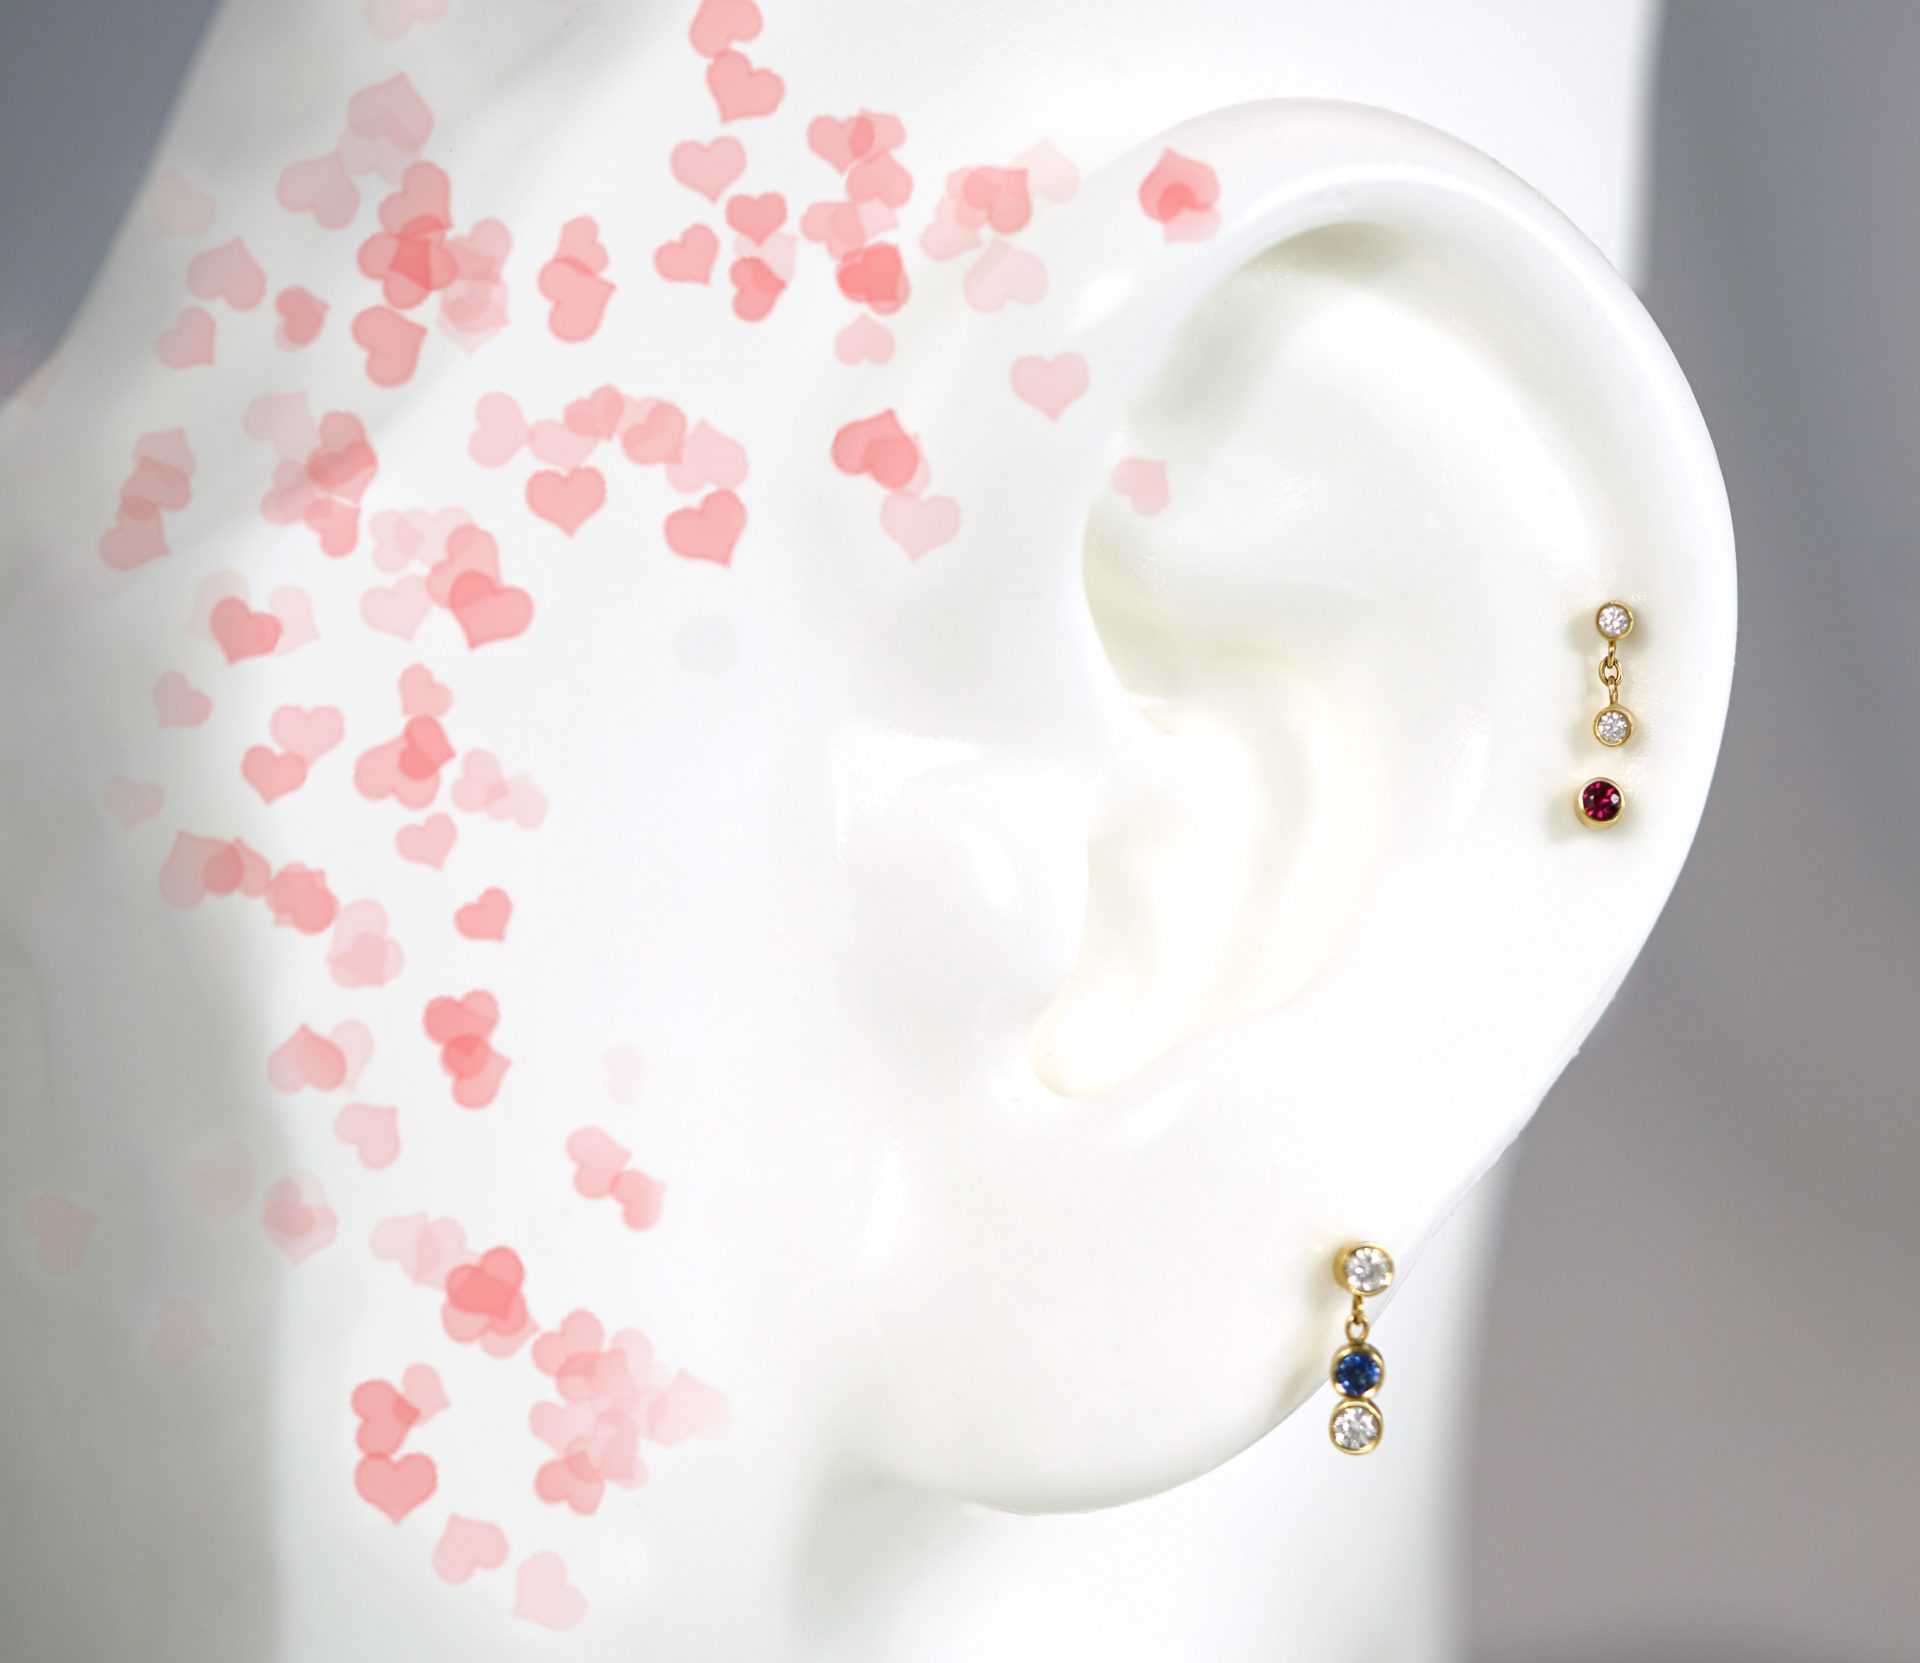 Valentines-Day-Gift-For-Her-Luxury-Piercing-Earrings-Buy-as-a-set-for-the-best-price